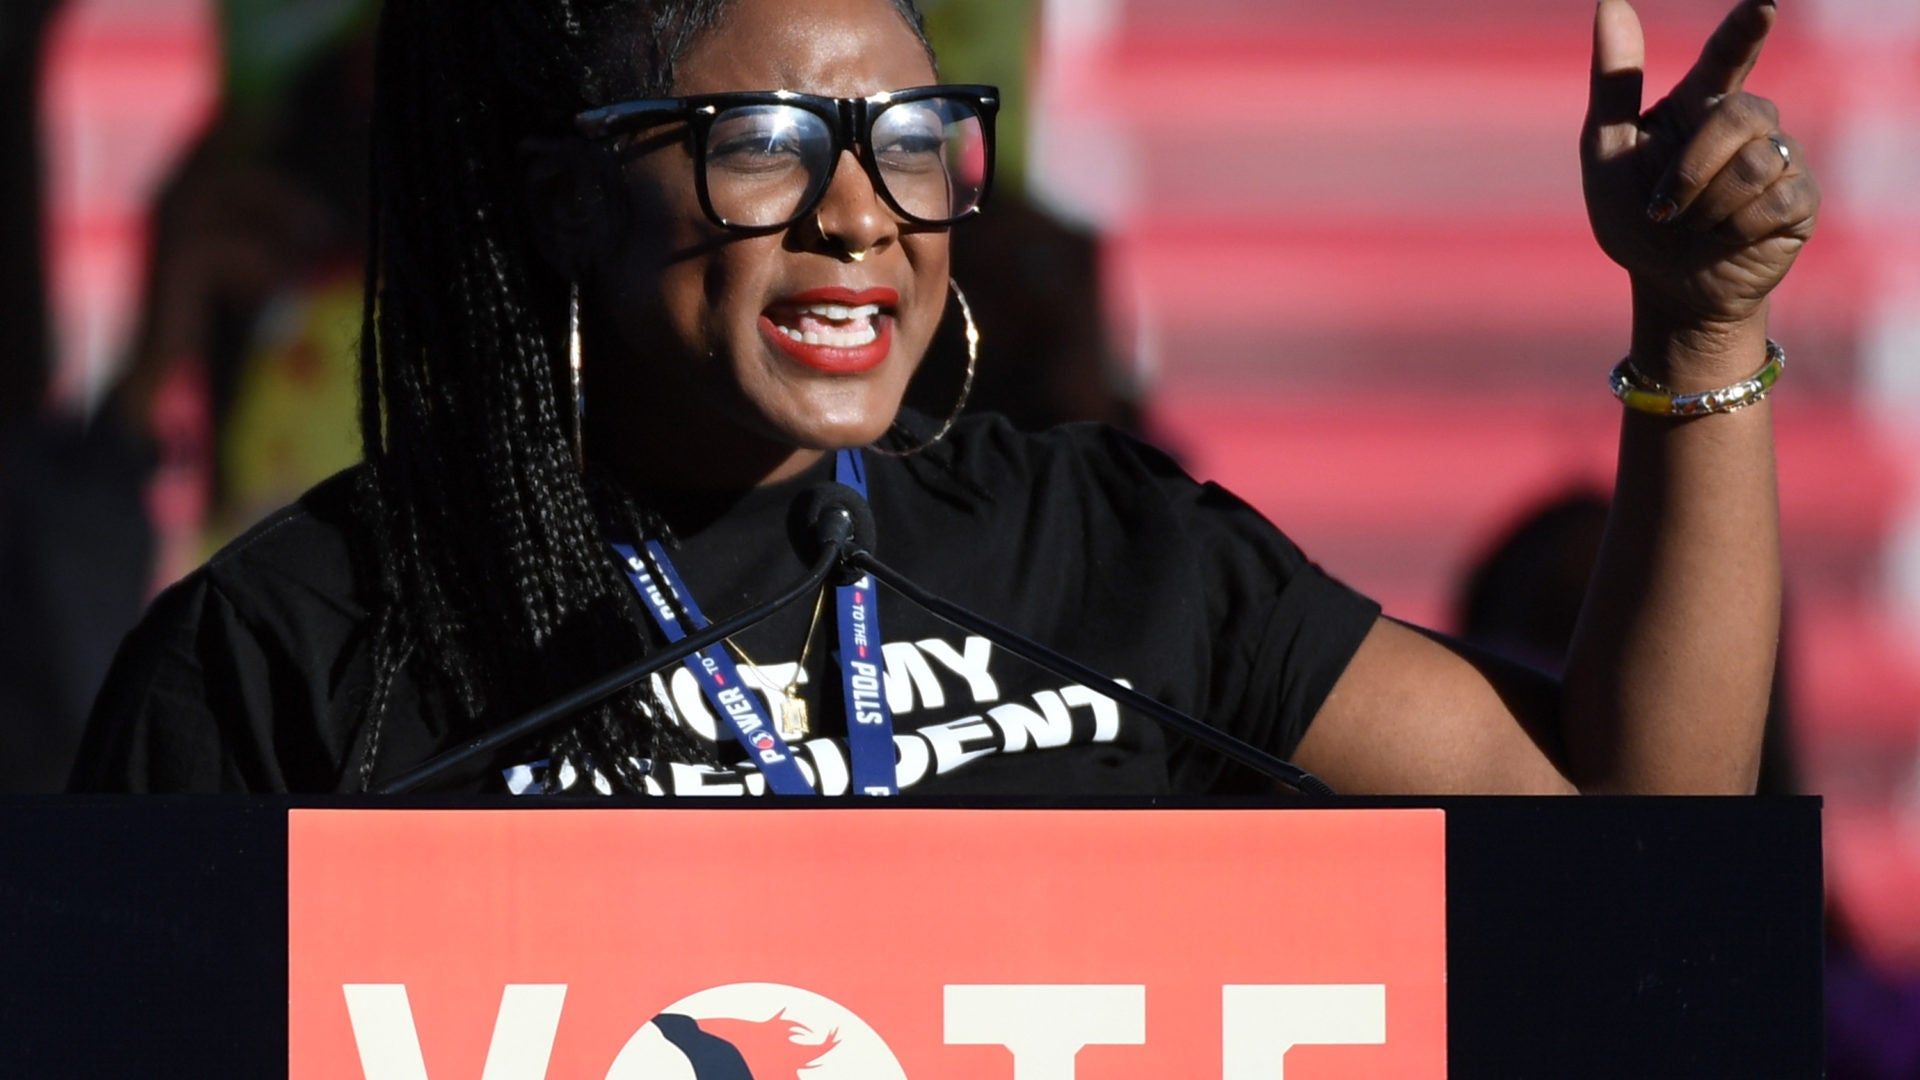 Women-Led Organization Kicks Off Bus Tour To Mobilize Female Voters